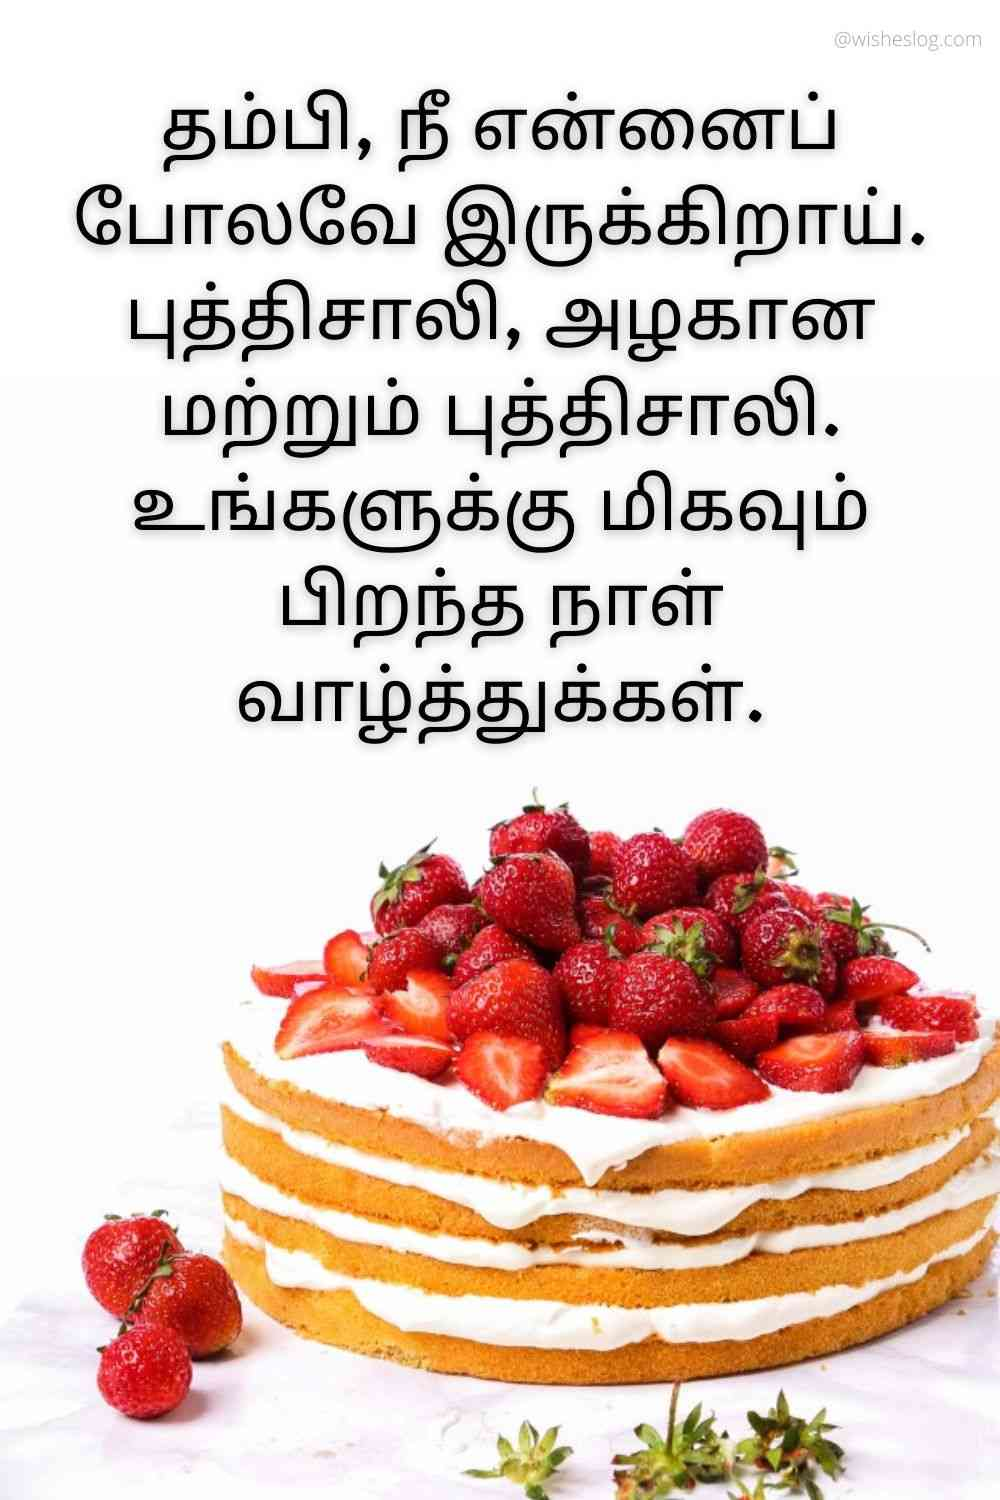 happy birthday wishes in tamil for brother